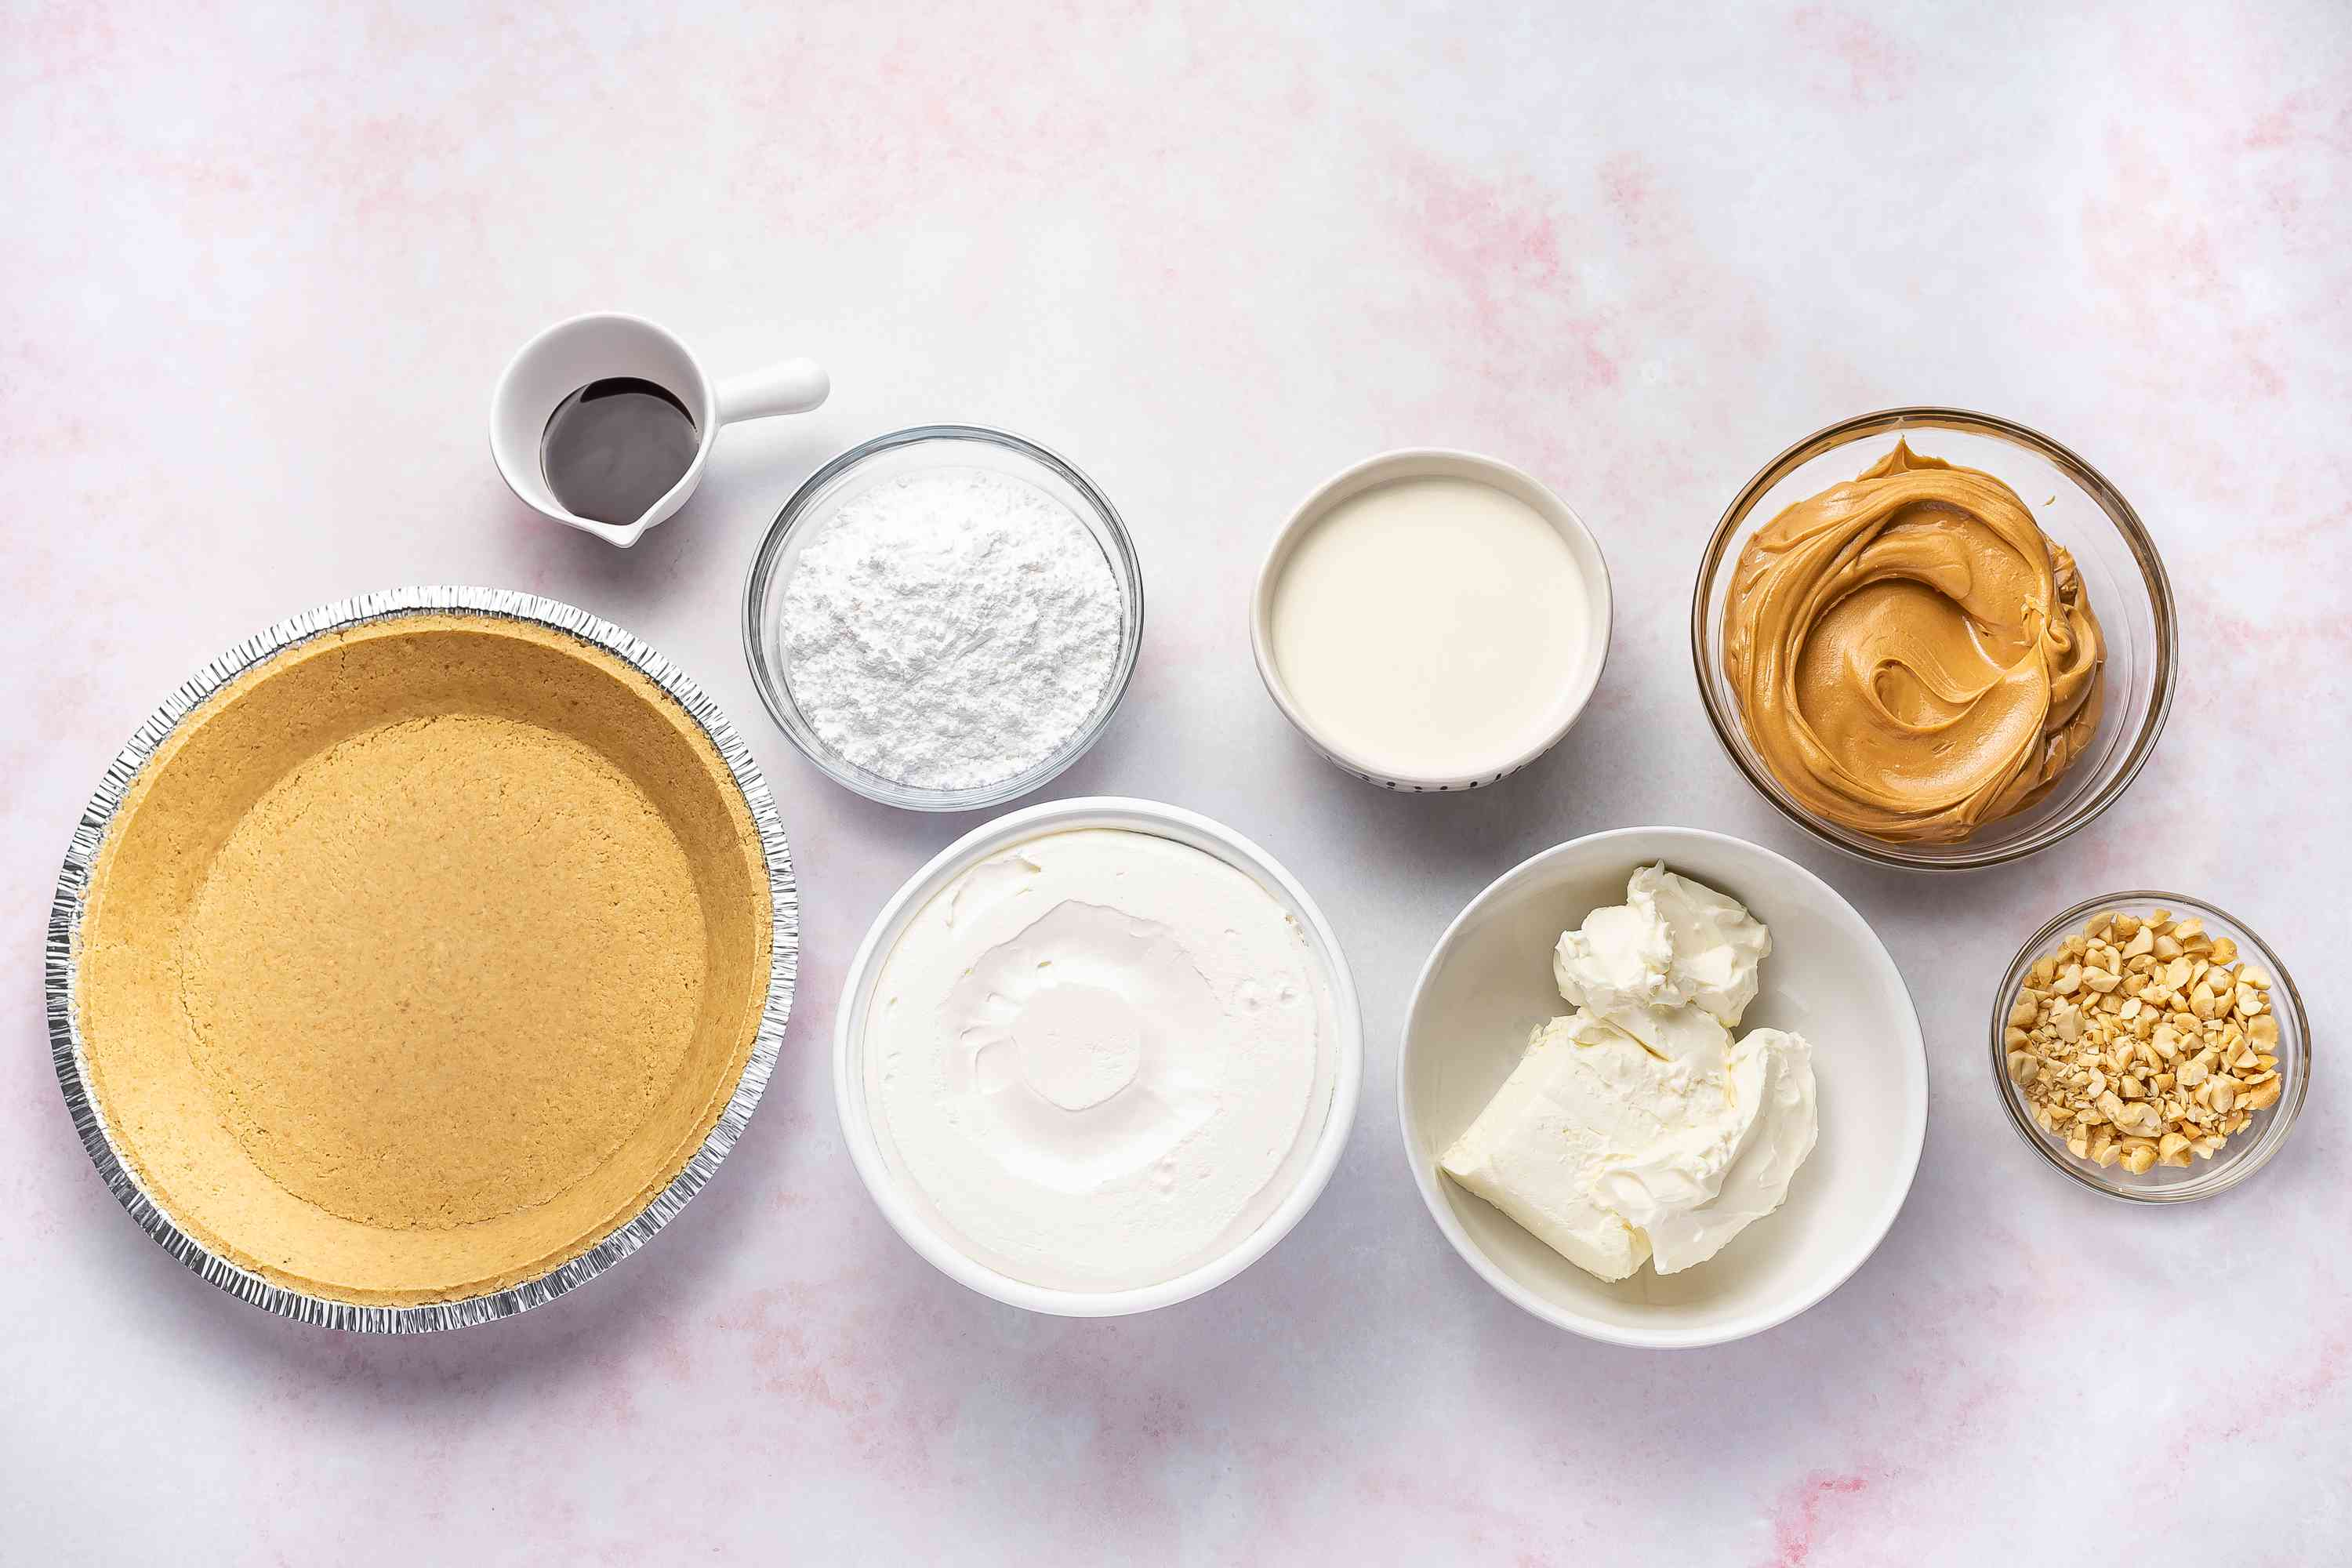 No-Bake Peanut Butter Pie With Cream Cheese Filling ingredients